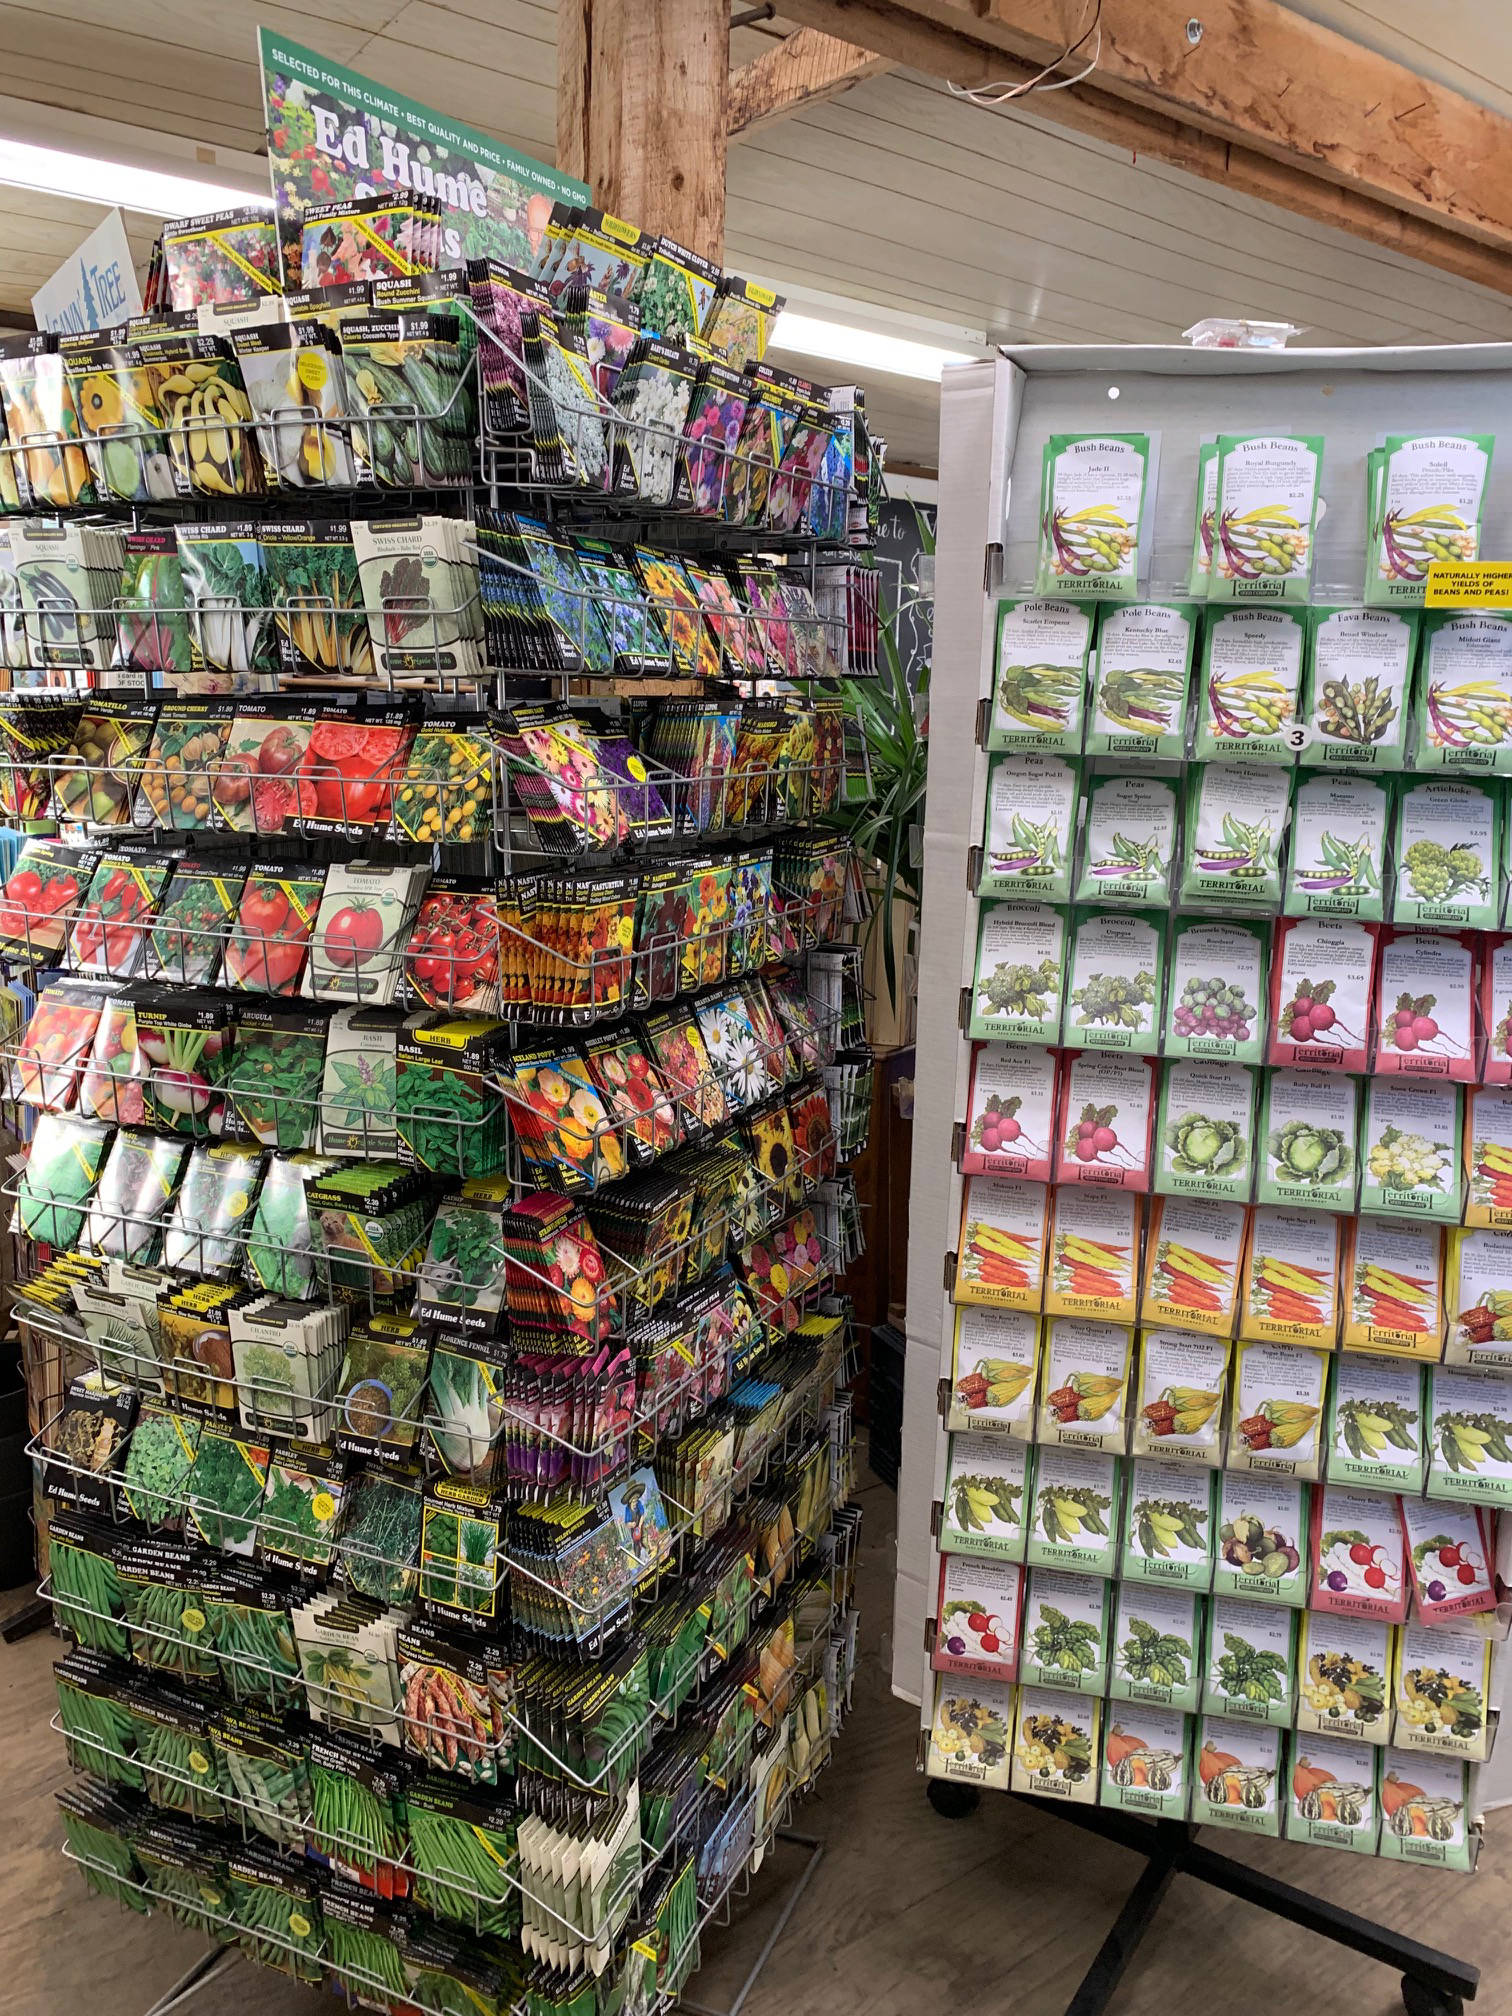 Seeds racks are everywhere. There are your favorite vegetables and flowers at your very fingertips. Take advantage of what Homer's local merchants have to offer, as shown here at the Wagon Wheel on Feb. 22, 2019, in Homer, Alaska. (Photo by Rosemary Fitzpatrick)